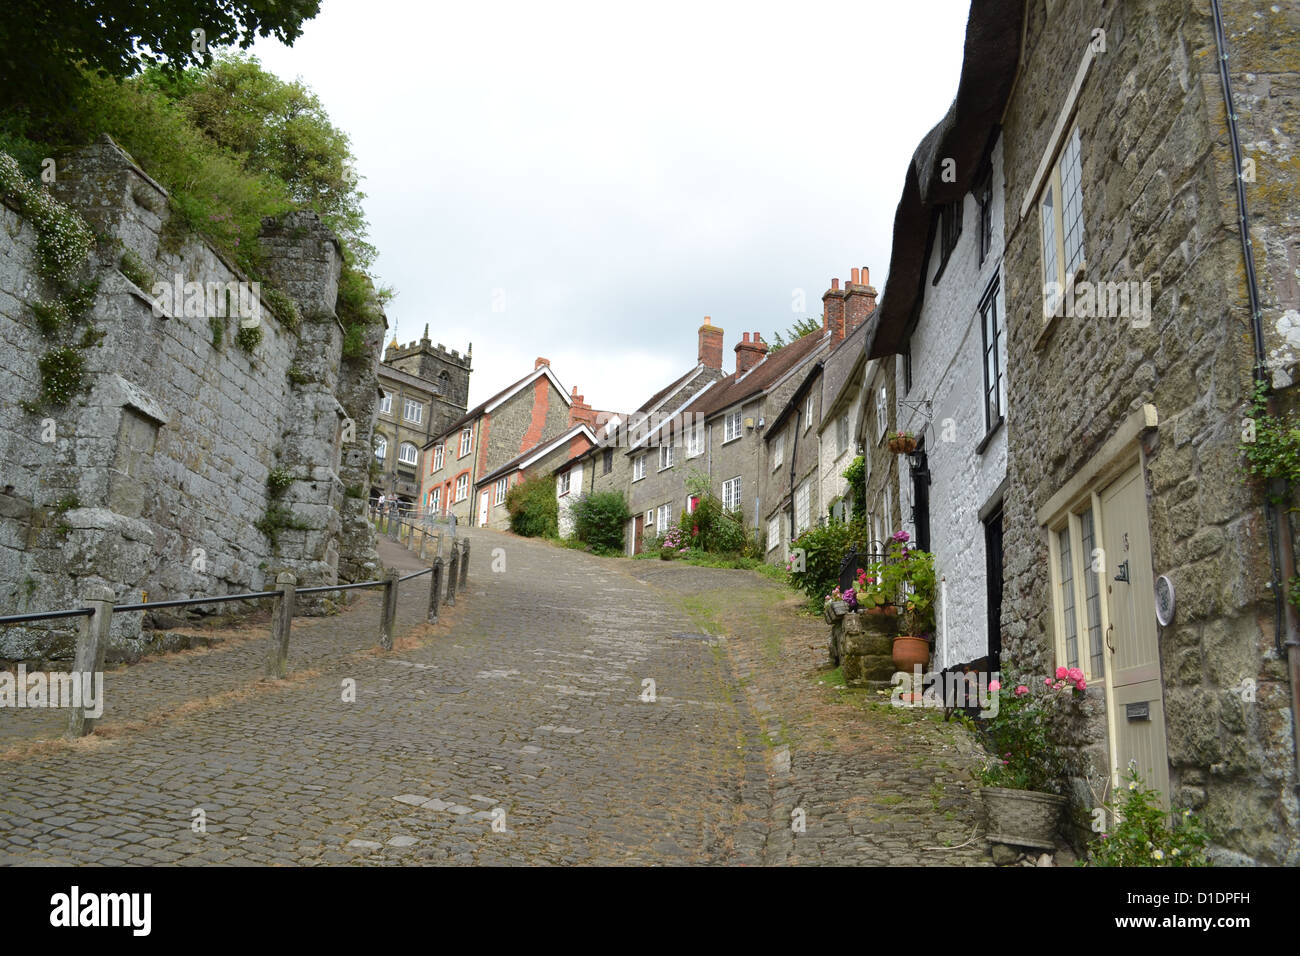 Gold Hill in Shaftesbury, Dorset. This picturesque hill has been used in many adverts and chocolate boxes. - Stock Image